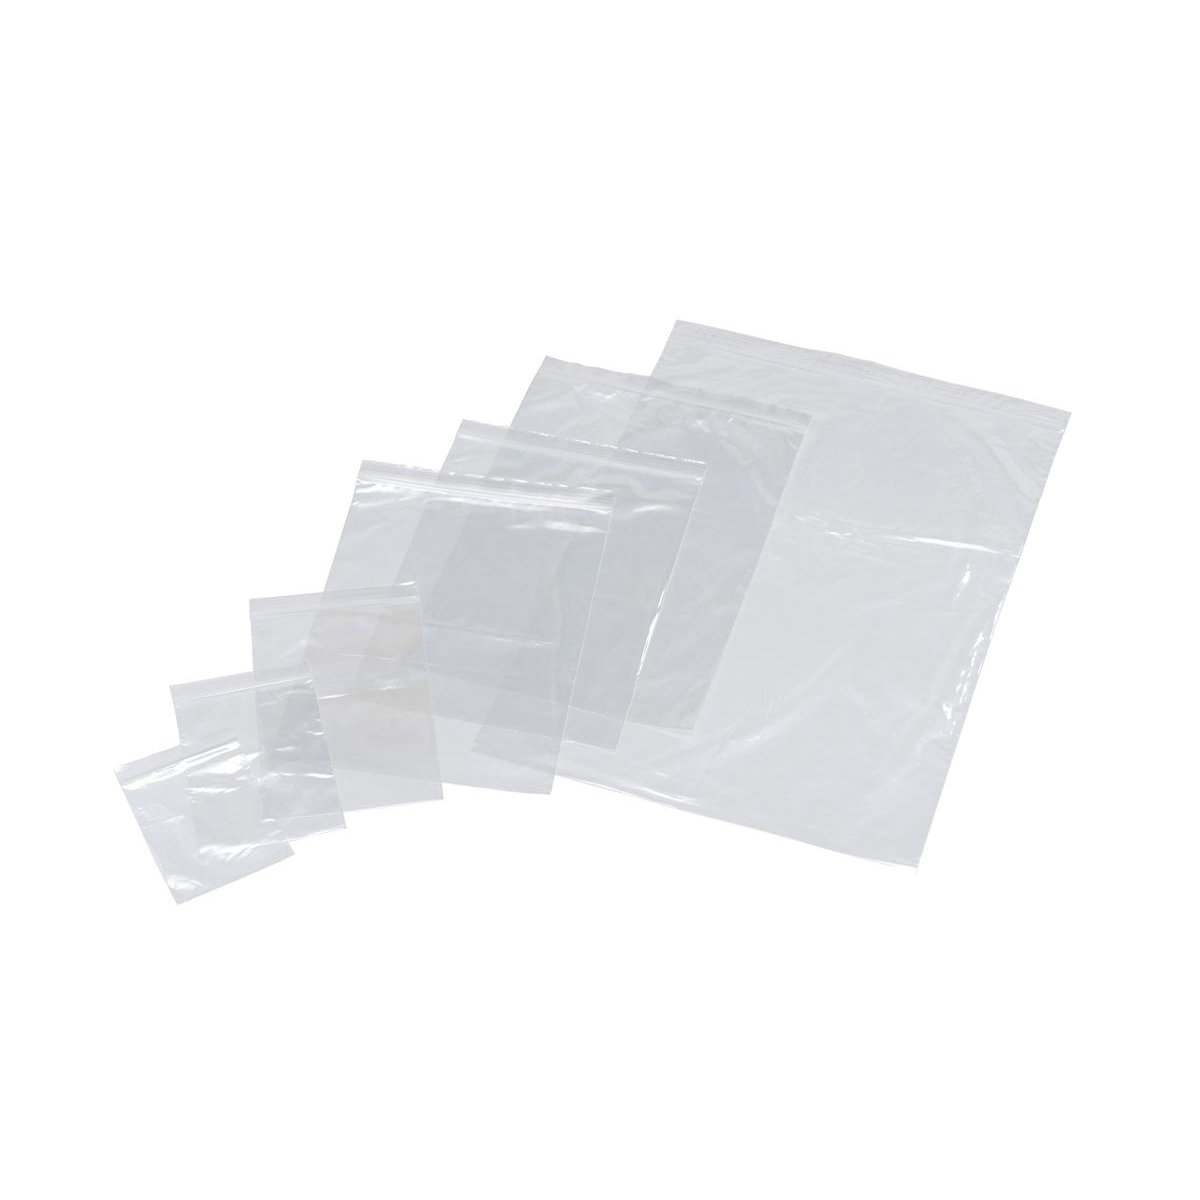 Grip Seal Polythene Bags Resealable Plain 40 Micron 75x82mm Pack 1000